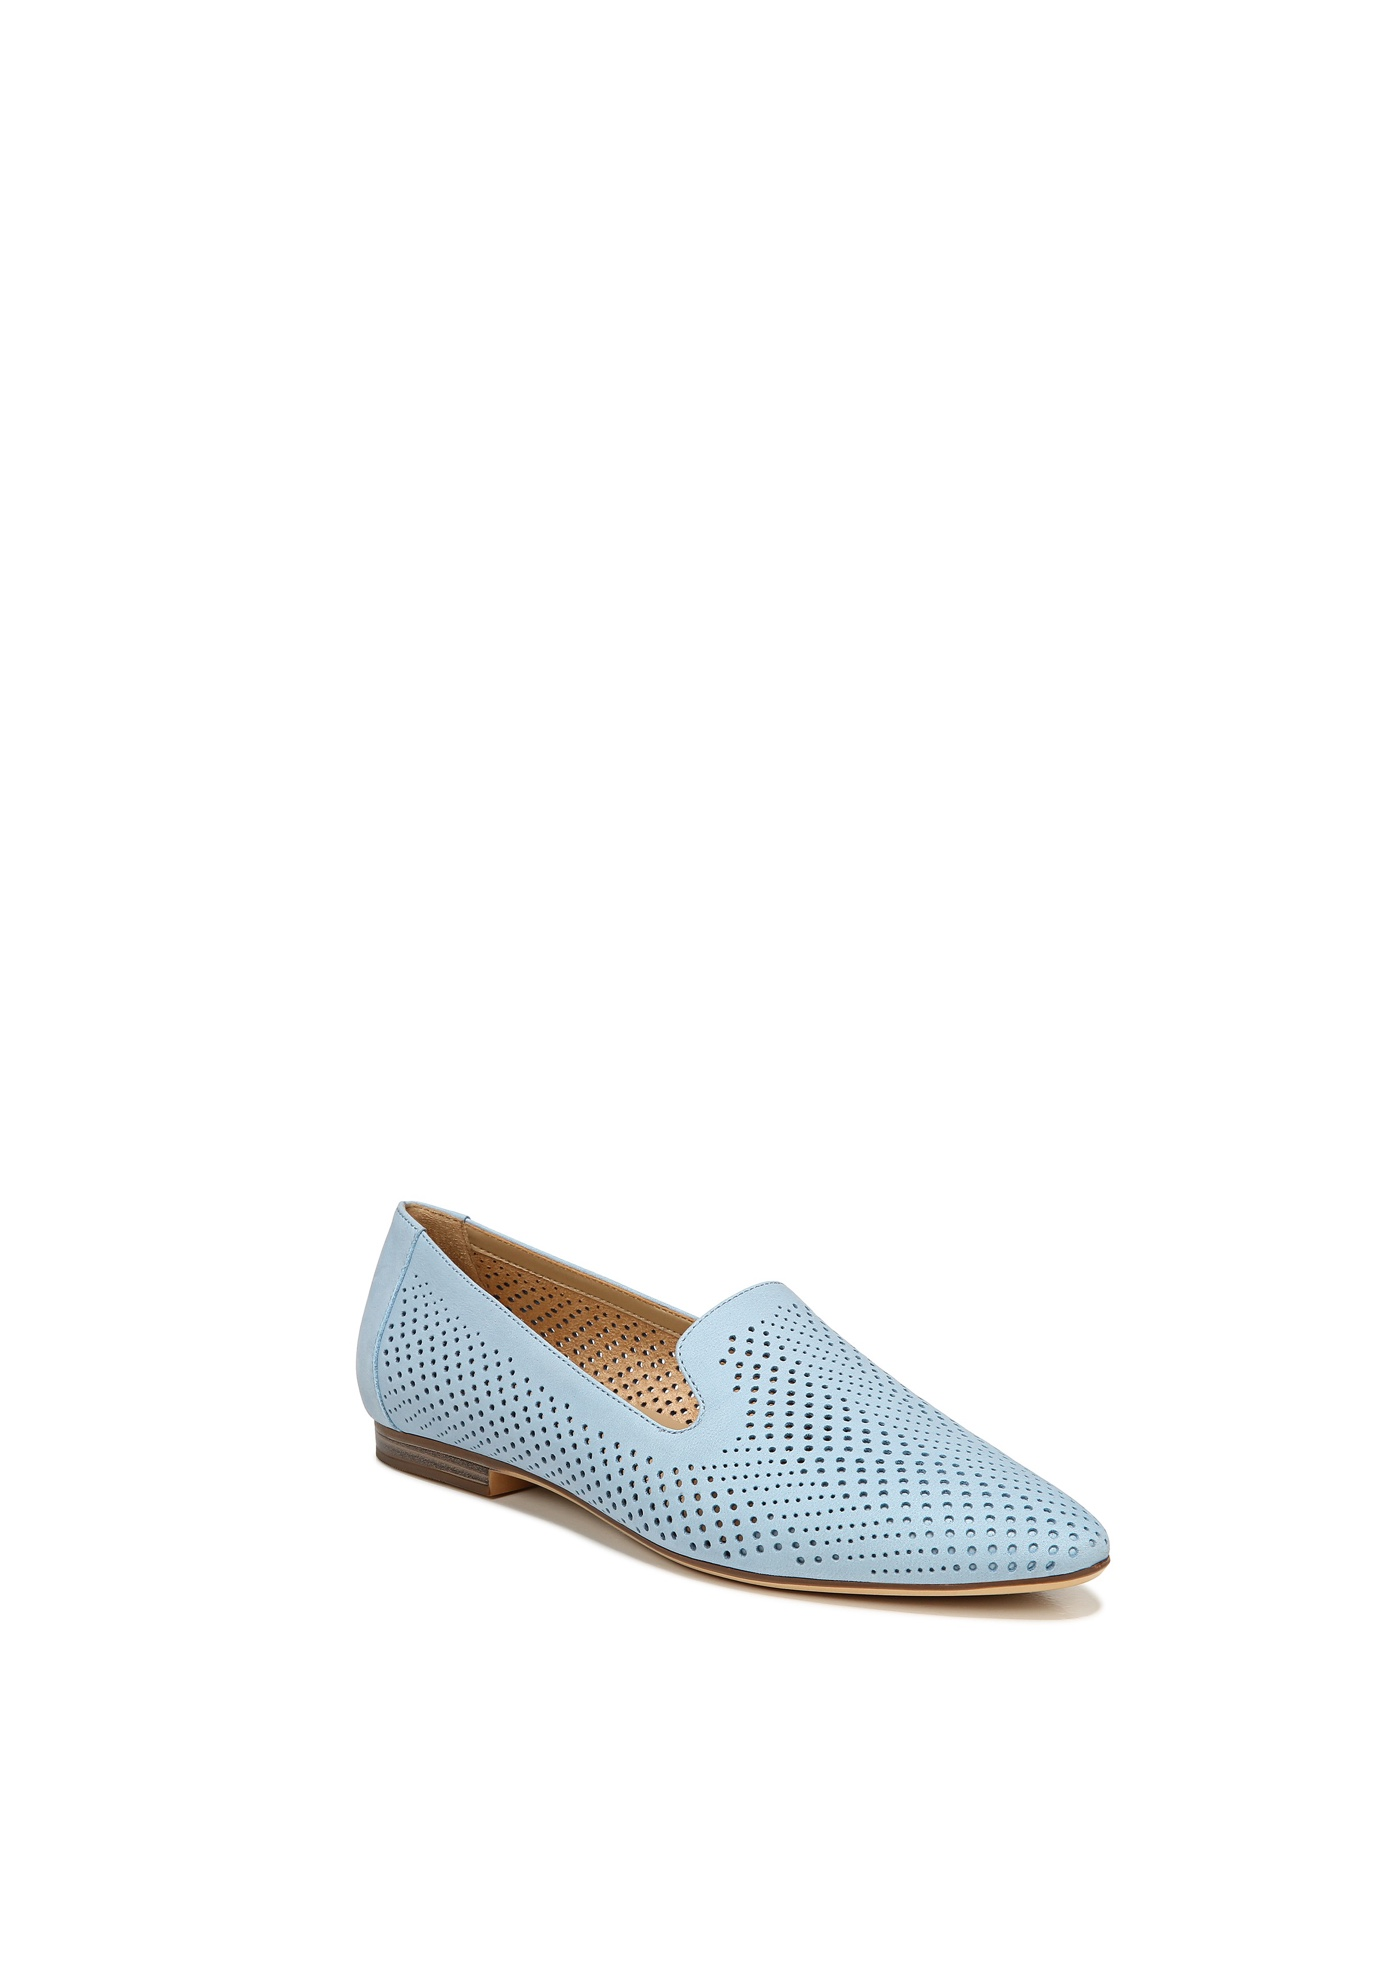 Lorna2 Loafer by Naturalizer,